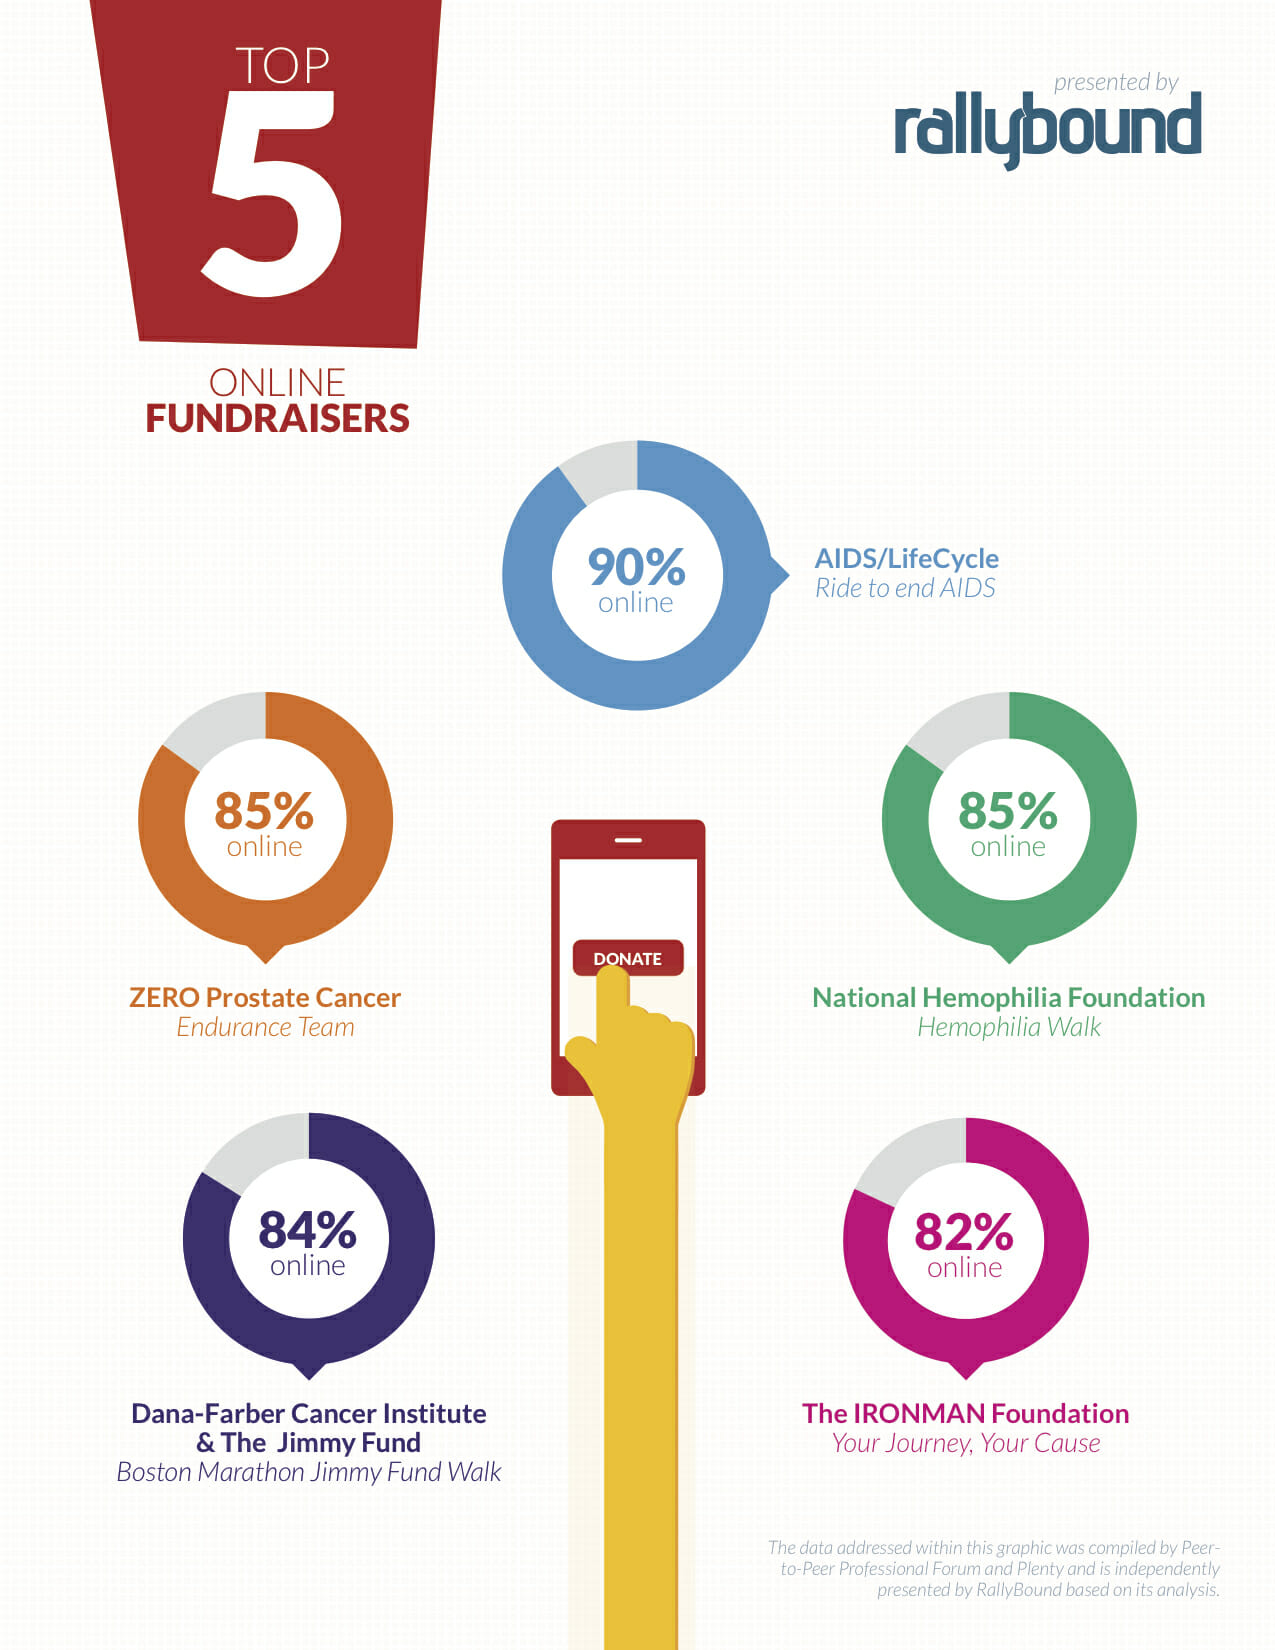 Top 5 Online Fundraisers in 2014